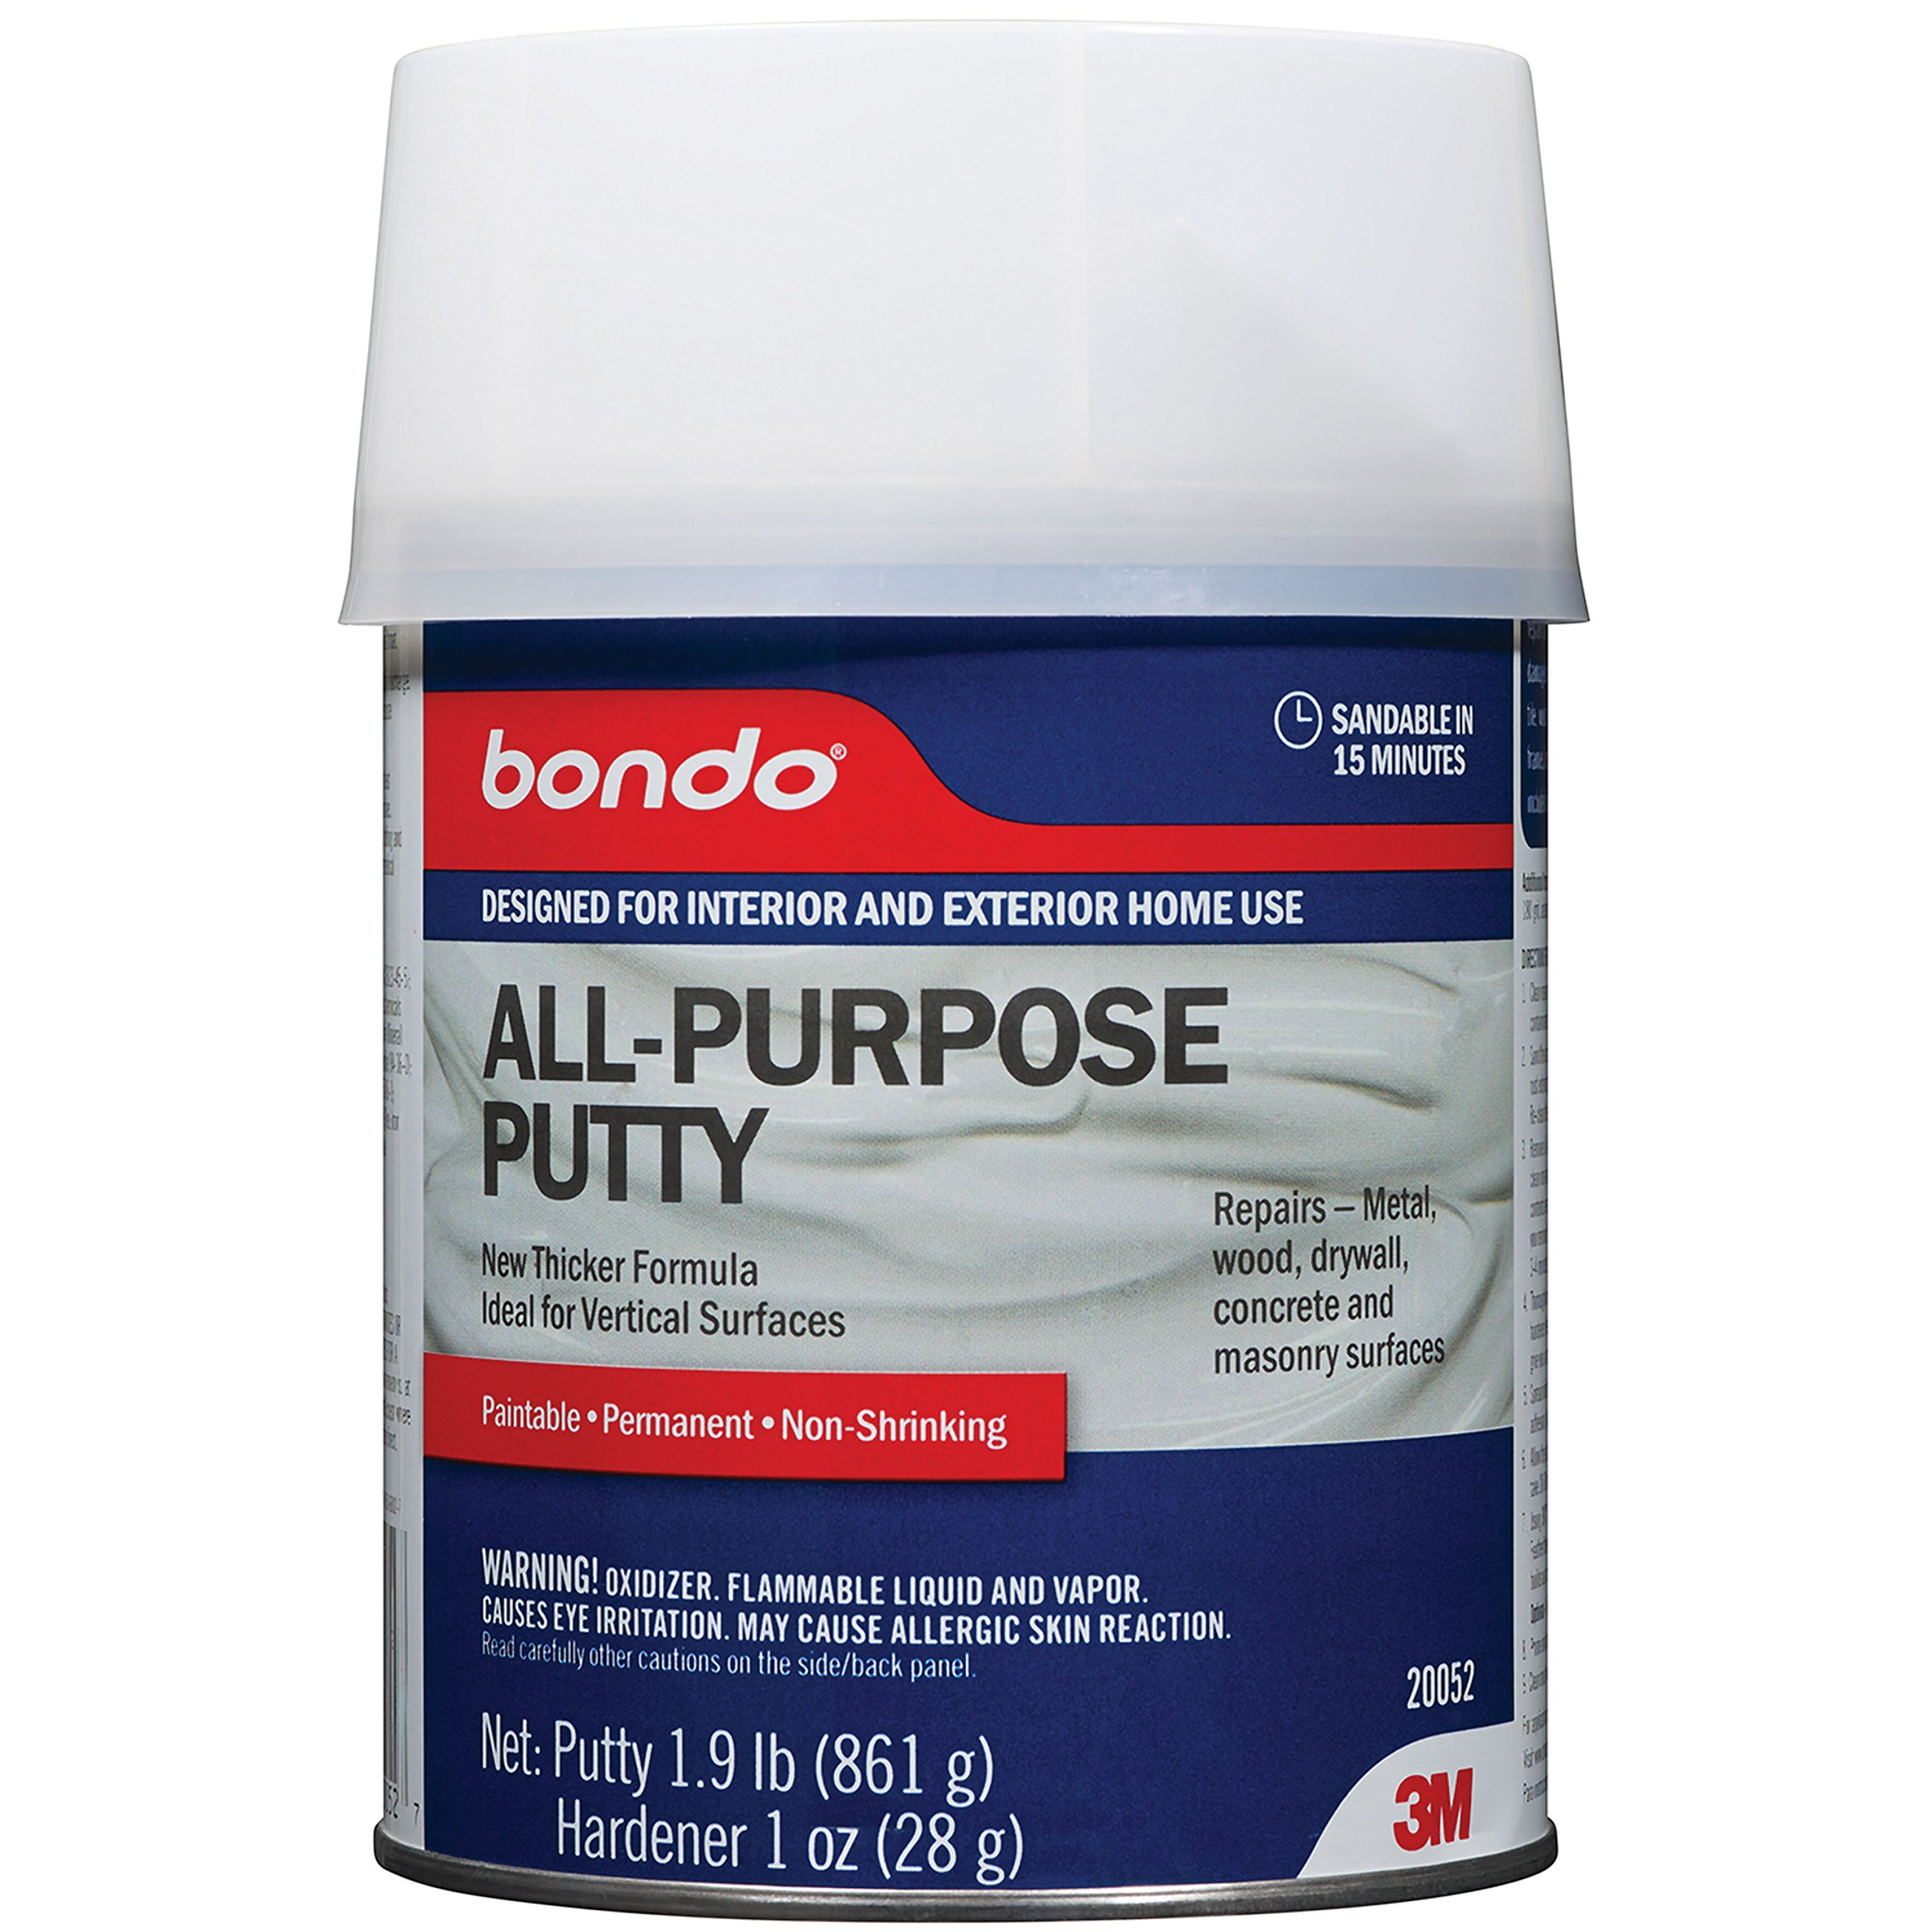 Bondo All-Purpose Putty, Designed for Interior and Exterior Home Use, Paintable, Permanent, Non-Shrinking, 1.9 lb., 1-Quart